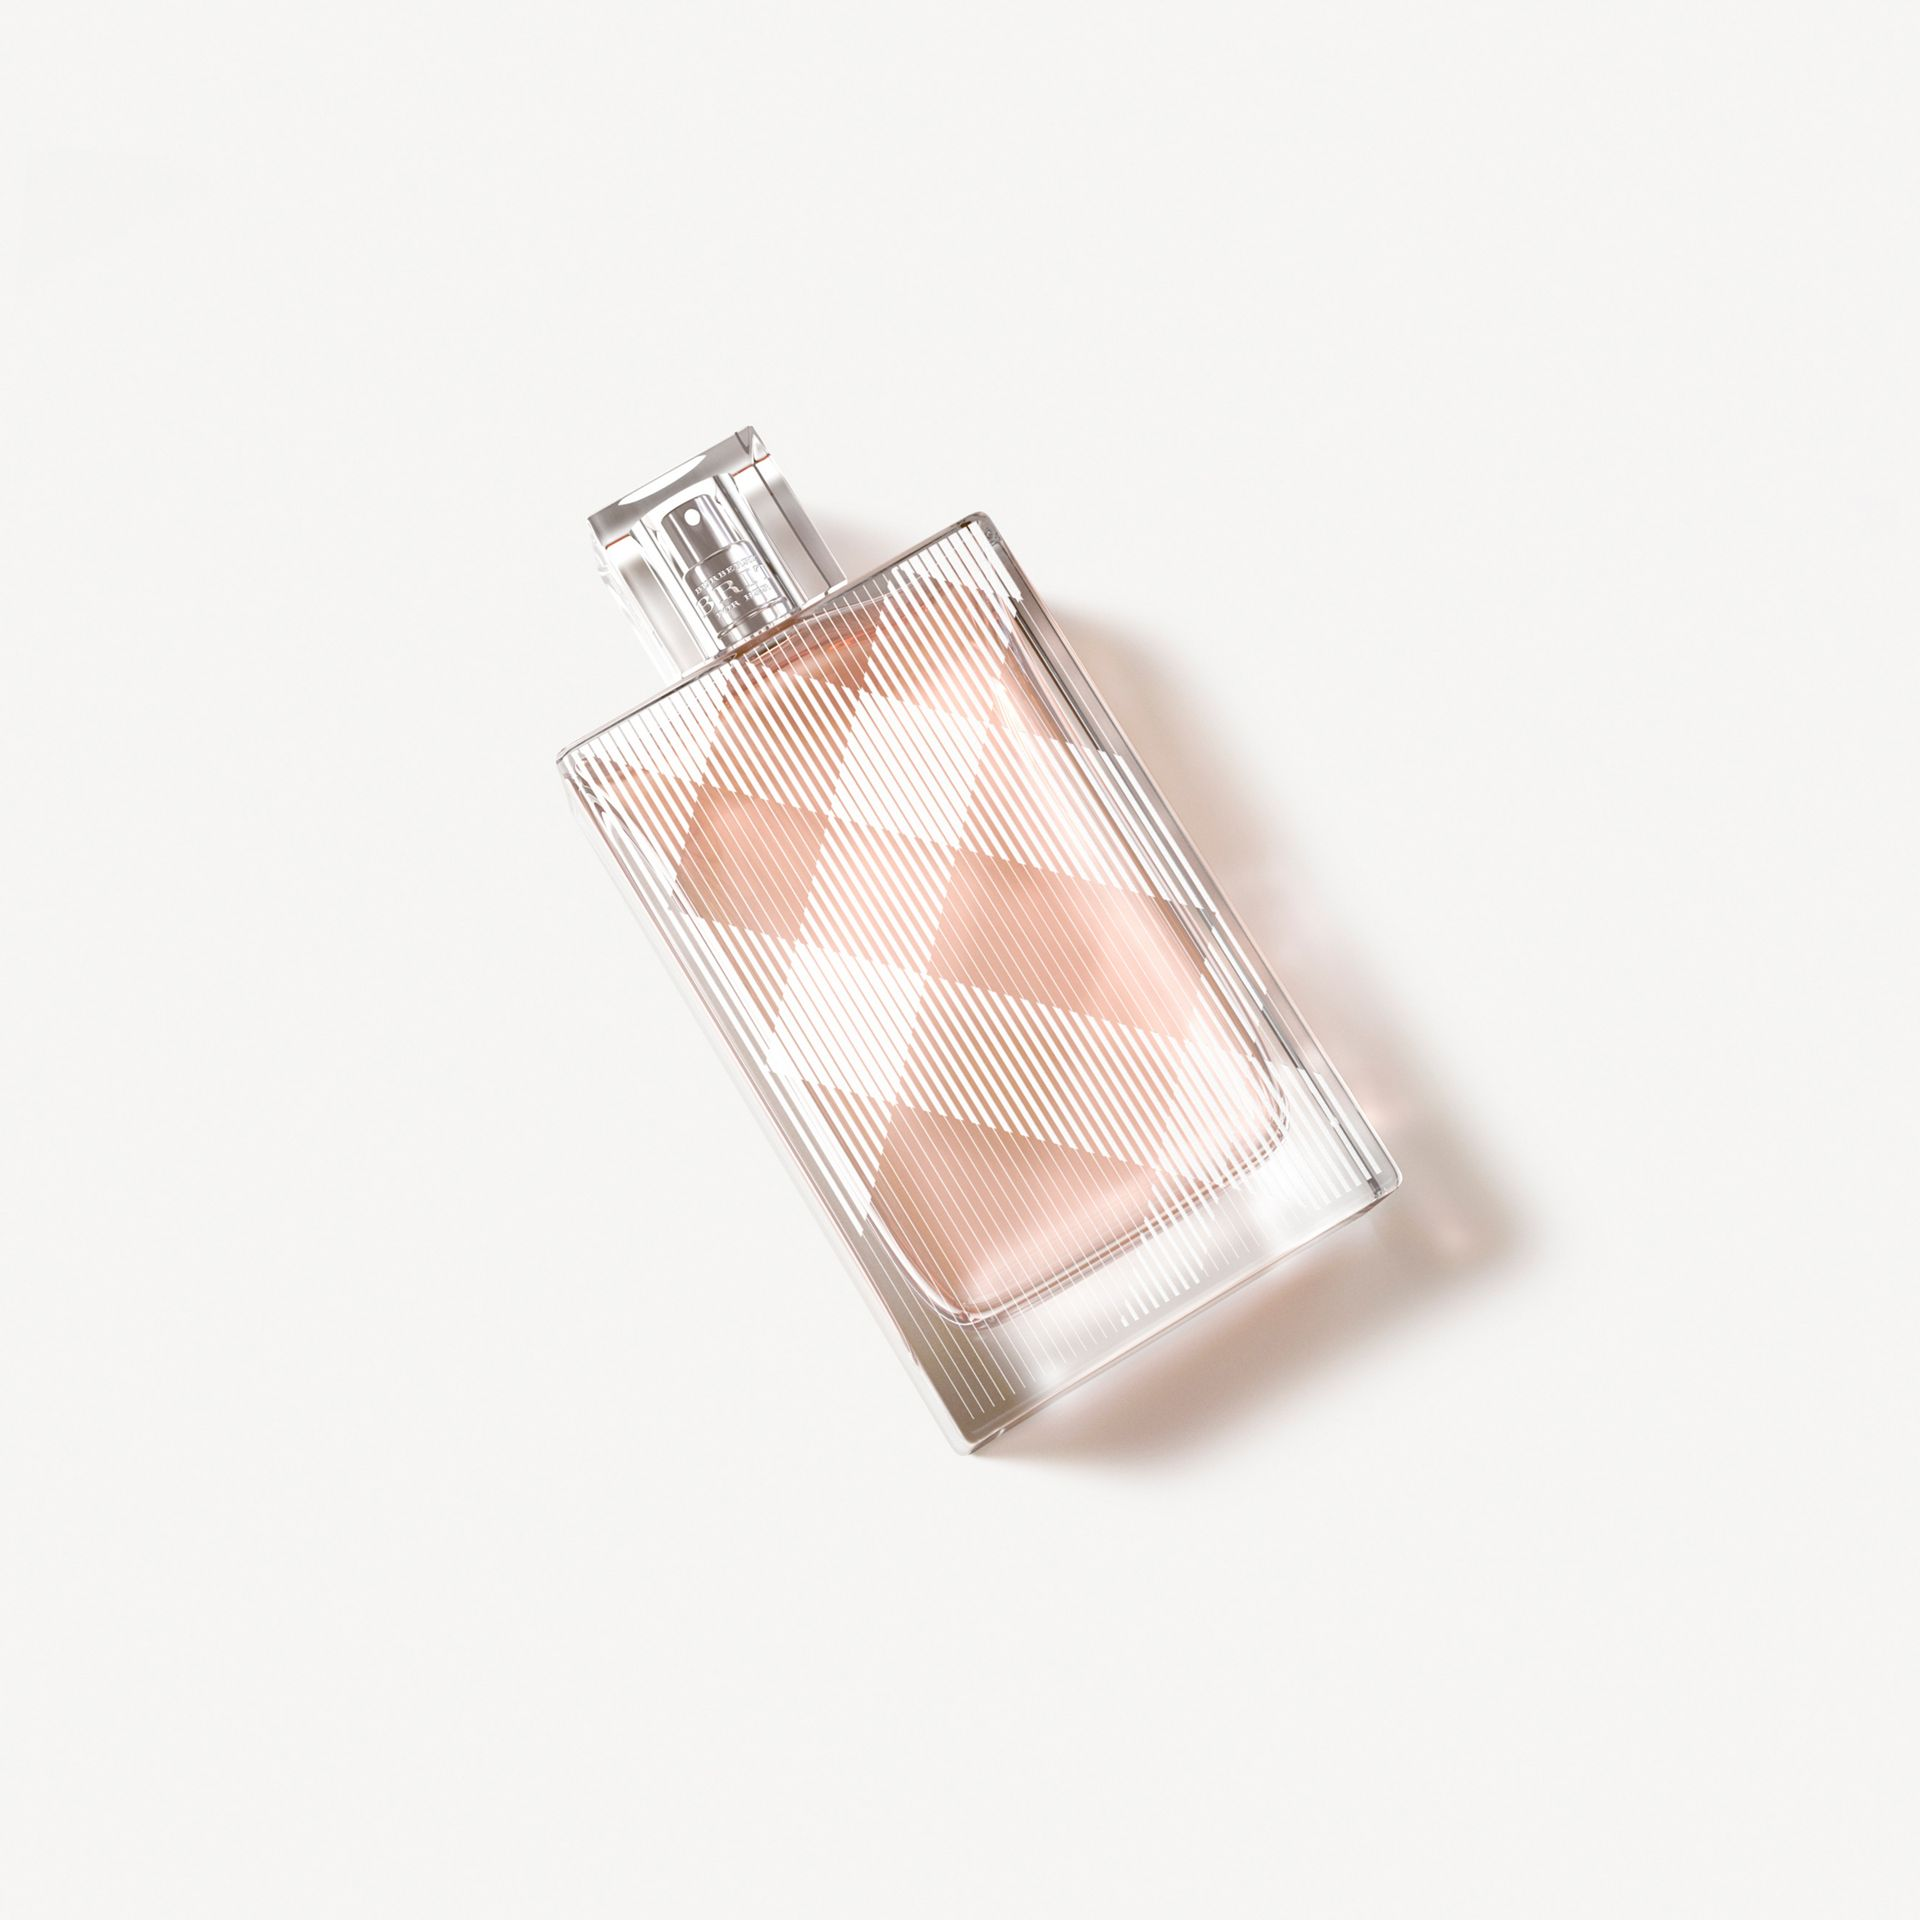 Eau de Toilette Burberry Brit for Her 100 ml - Femme | Burberry - photo de la galerie 1